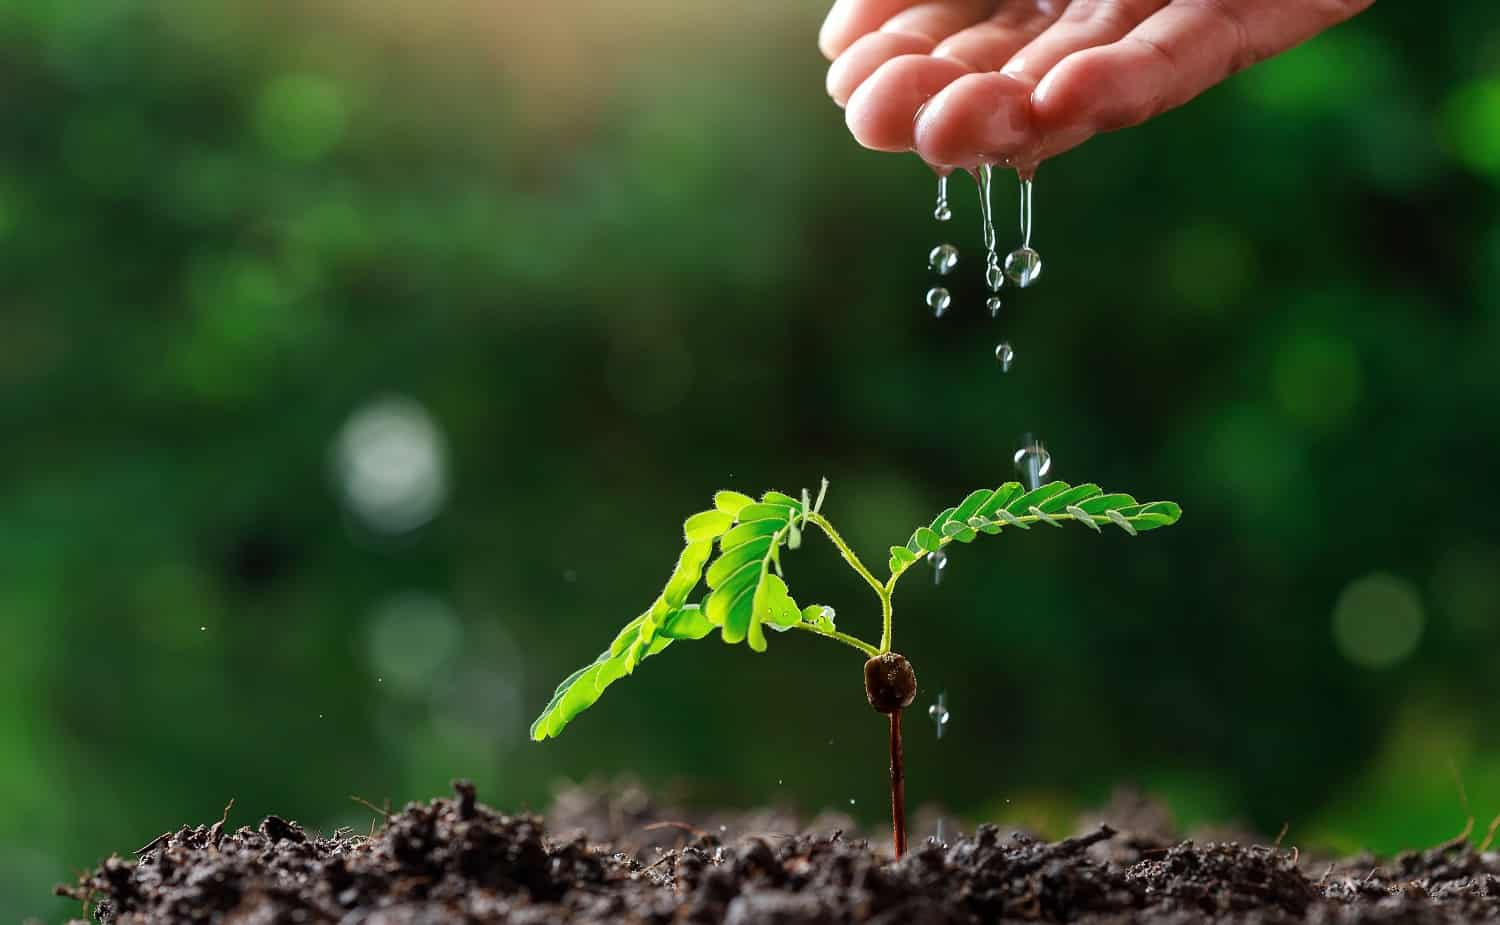 Close up Farmer Hand watering young baby plants (tamarind tree).